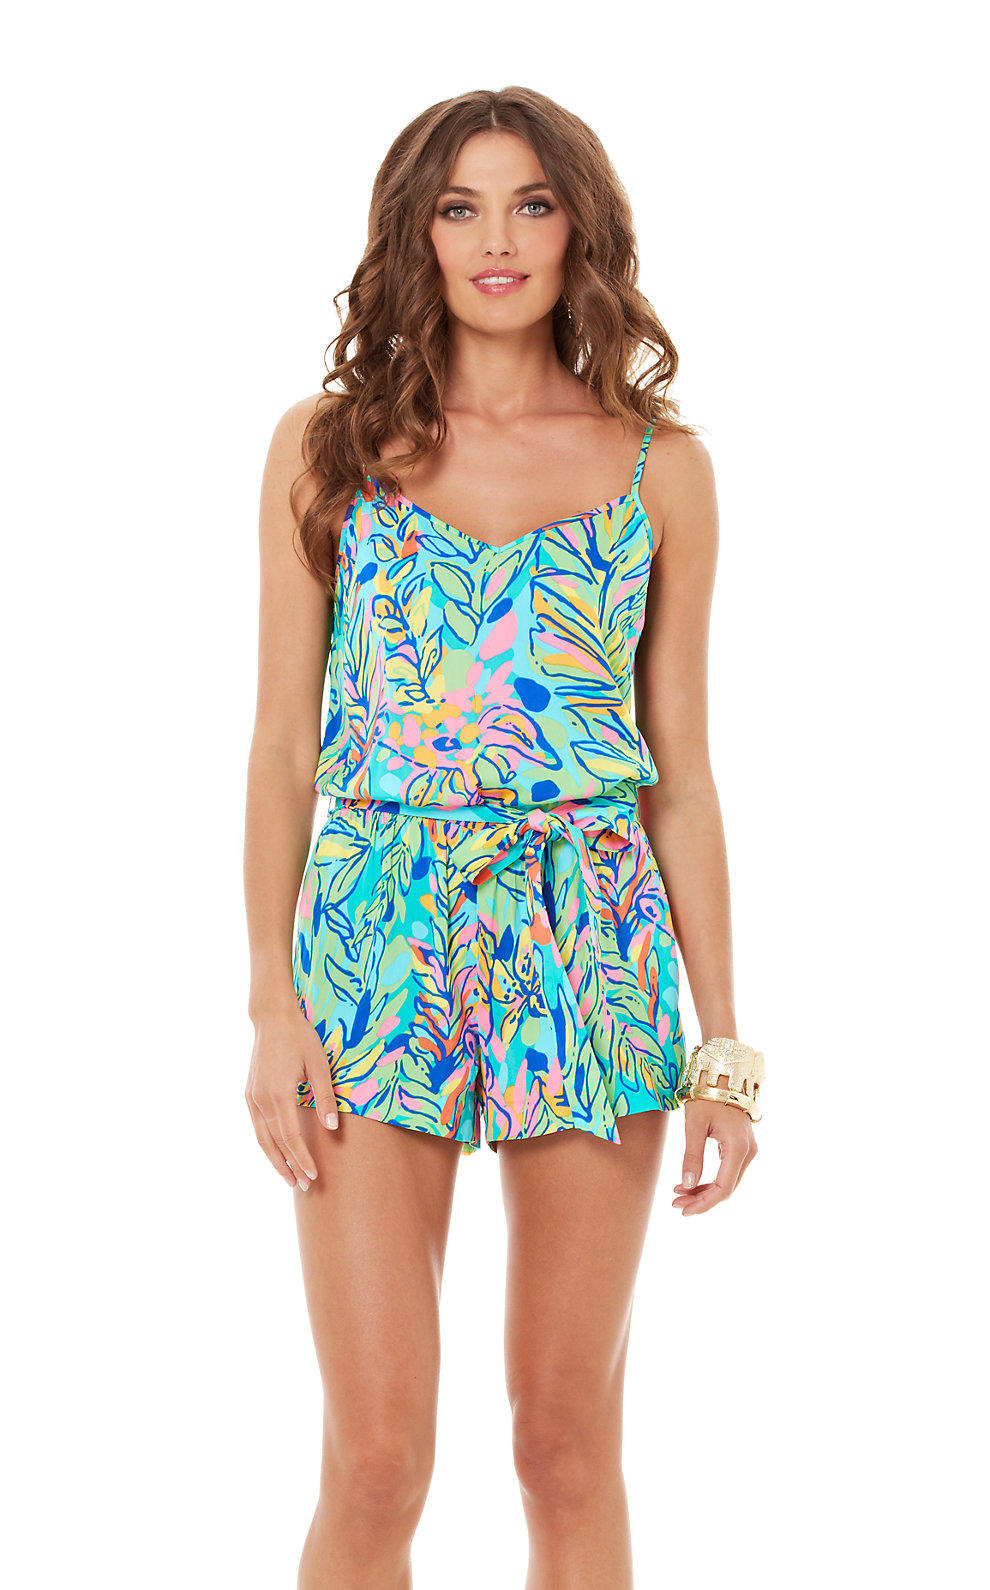 e2fb2f360aa9 Lilly Pulitzer Deanna Tank Top Romper from Lilly Pulitzer